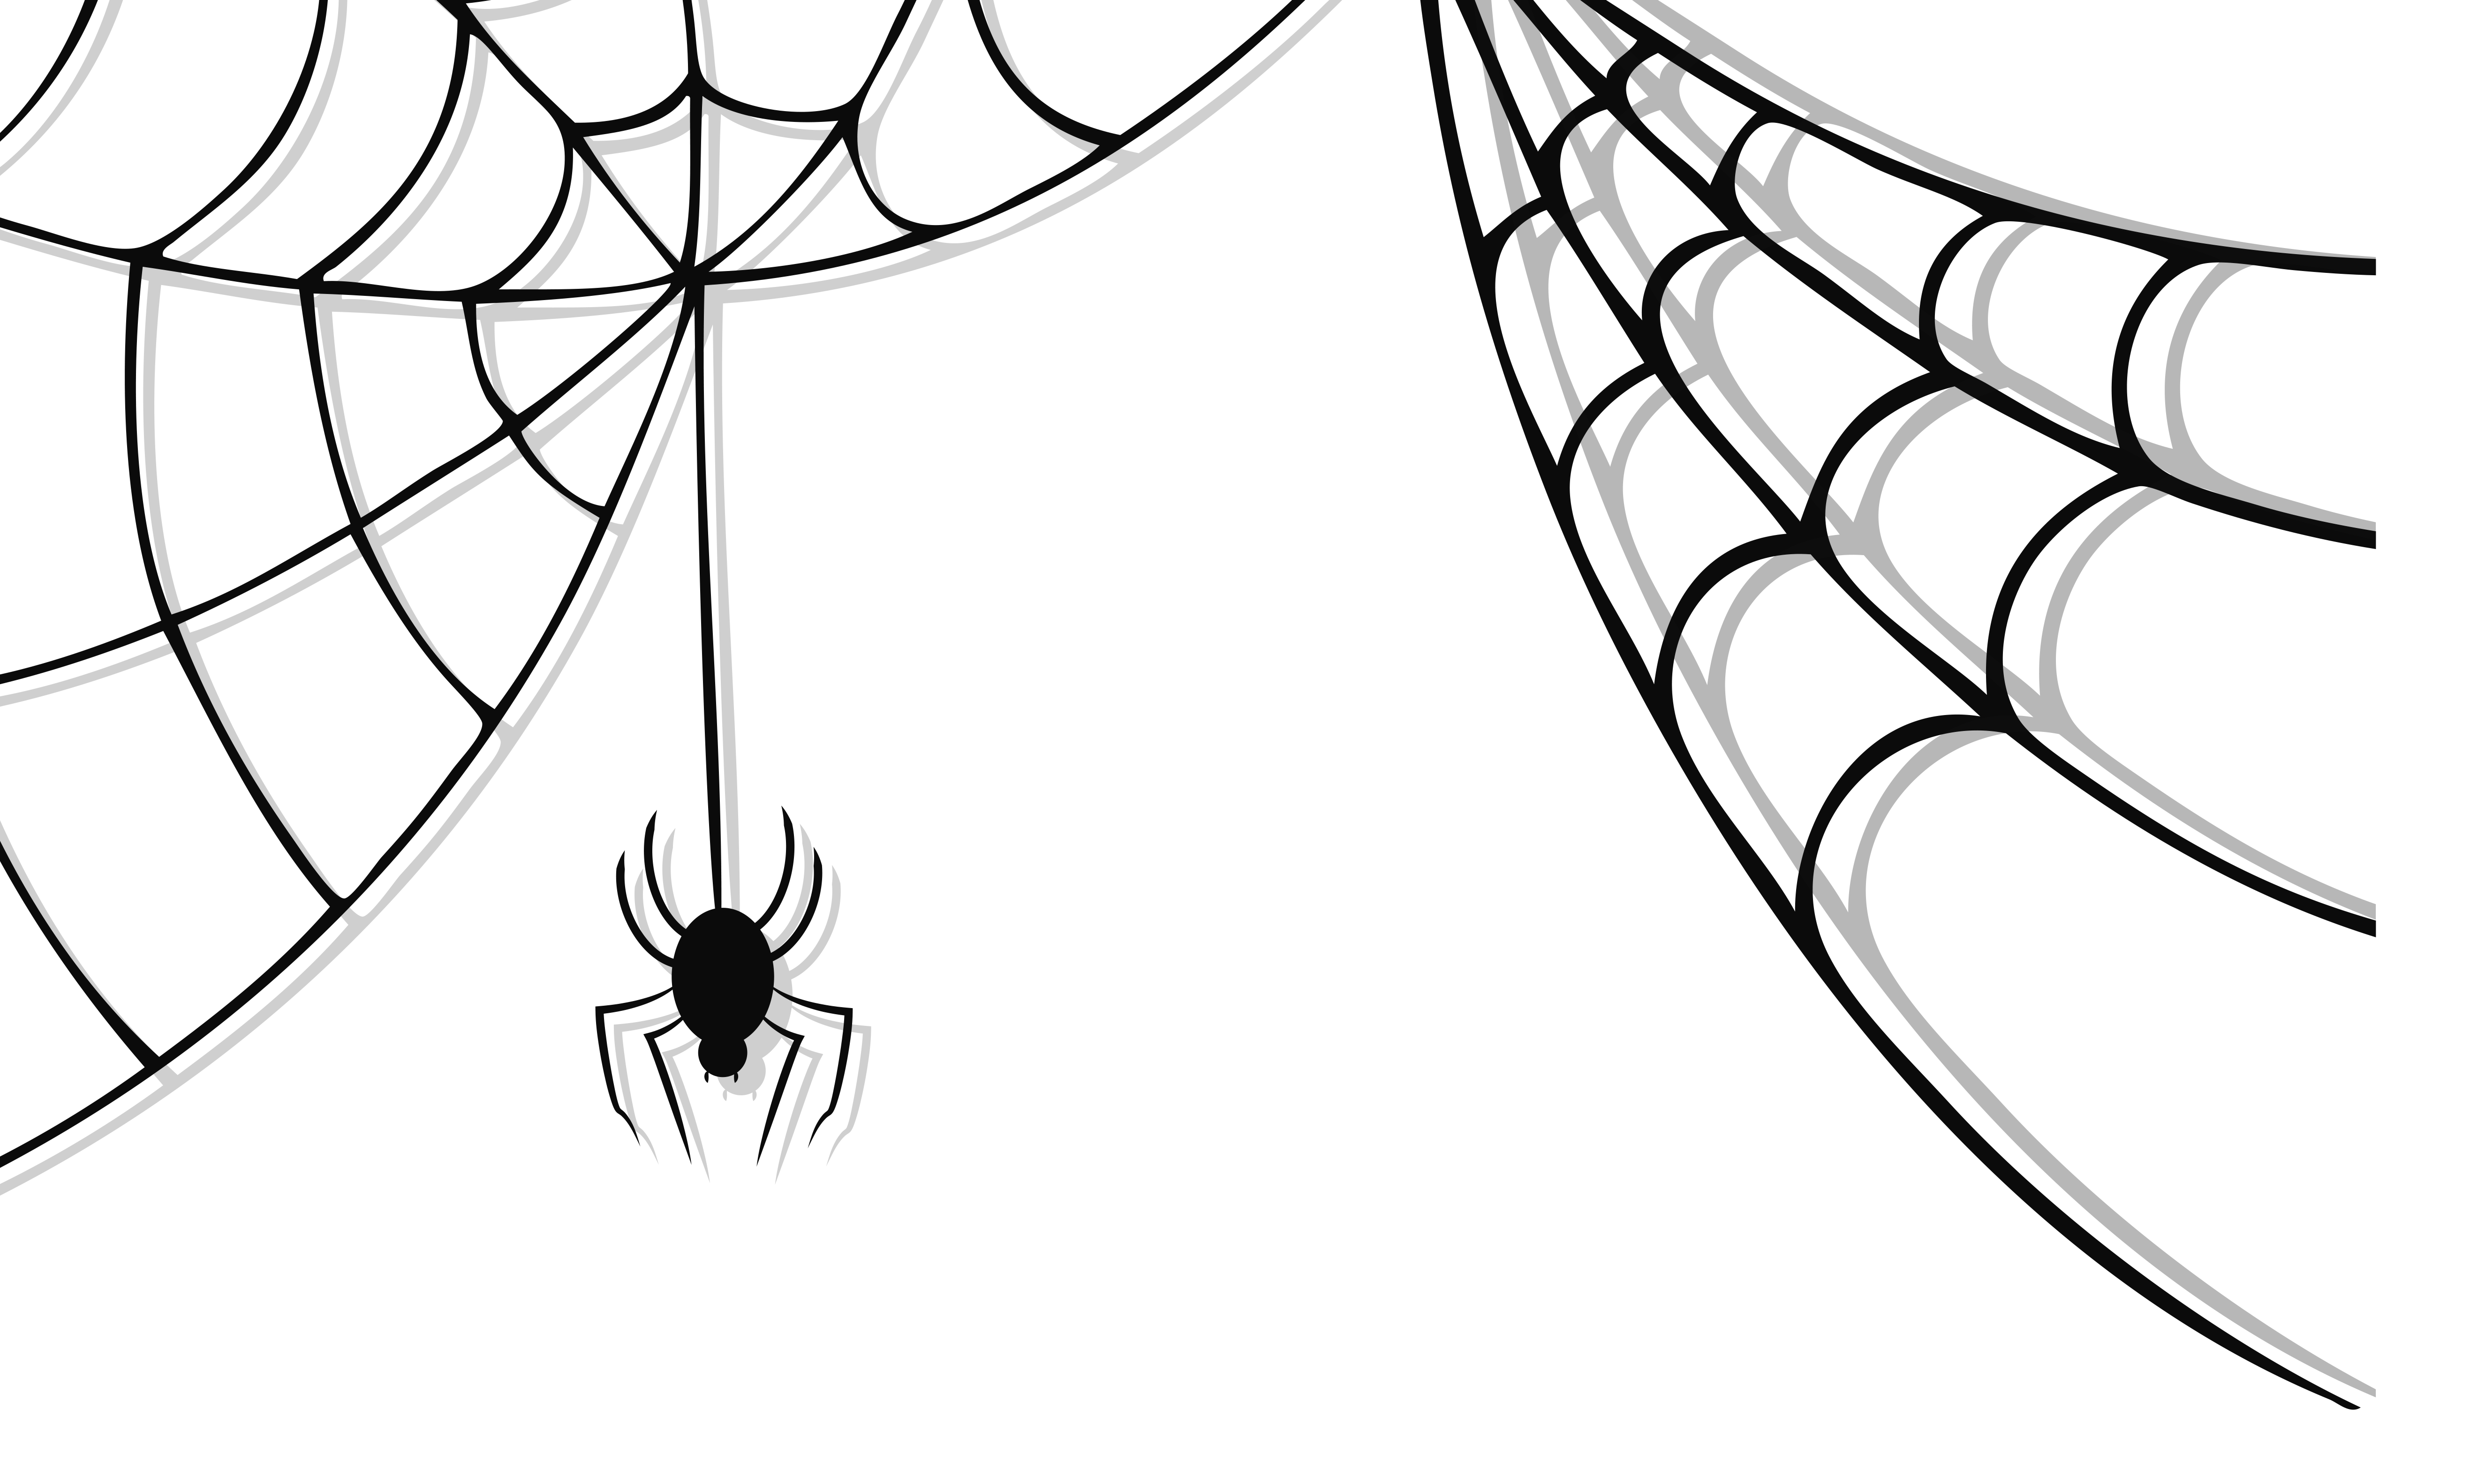 Haunted Spider And Web Clipart-Haunted Spider and Web Clipart-4